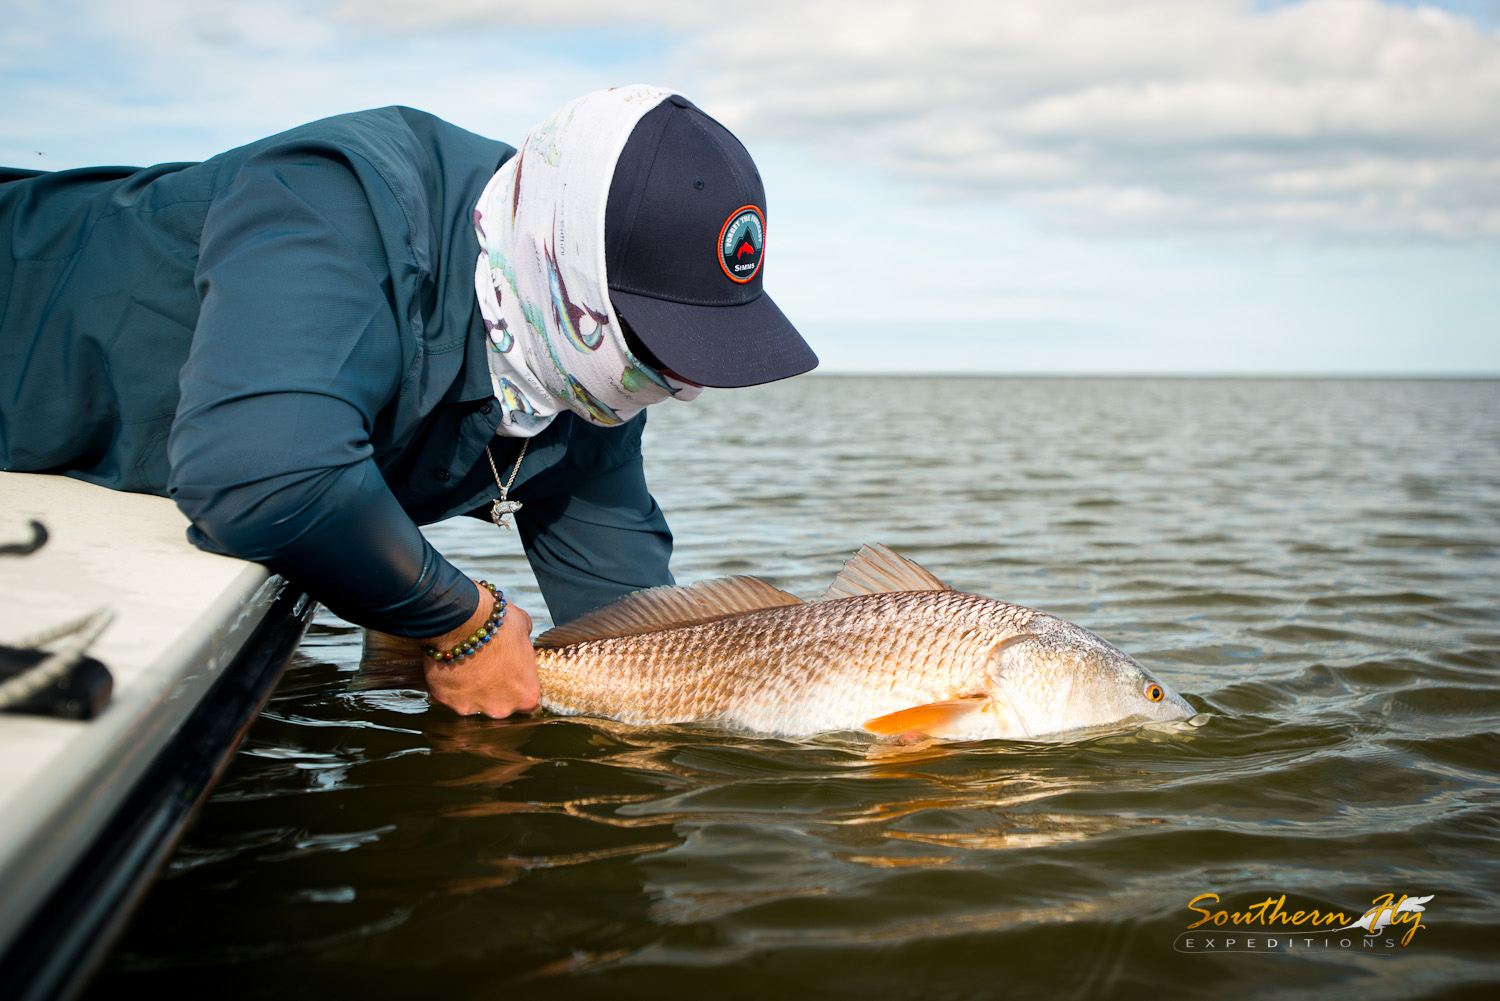 2019-01-08-09_SouthernFlyExpeditions_NewOrleans_LivaniaSpinetti-4.jpg